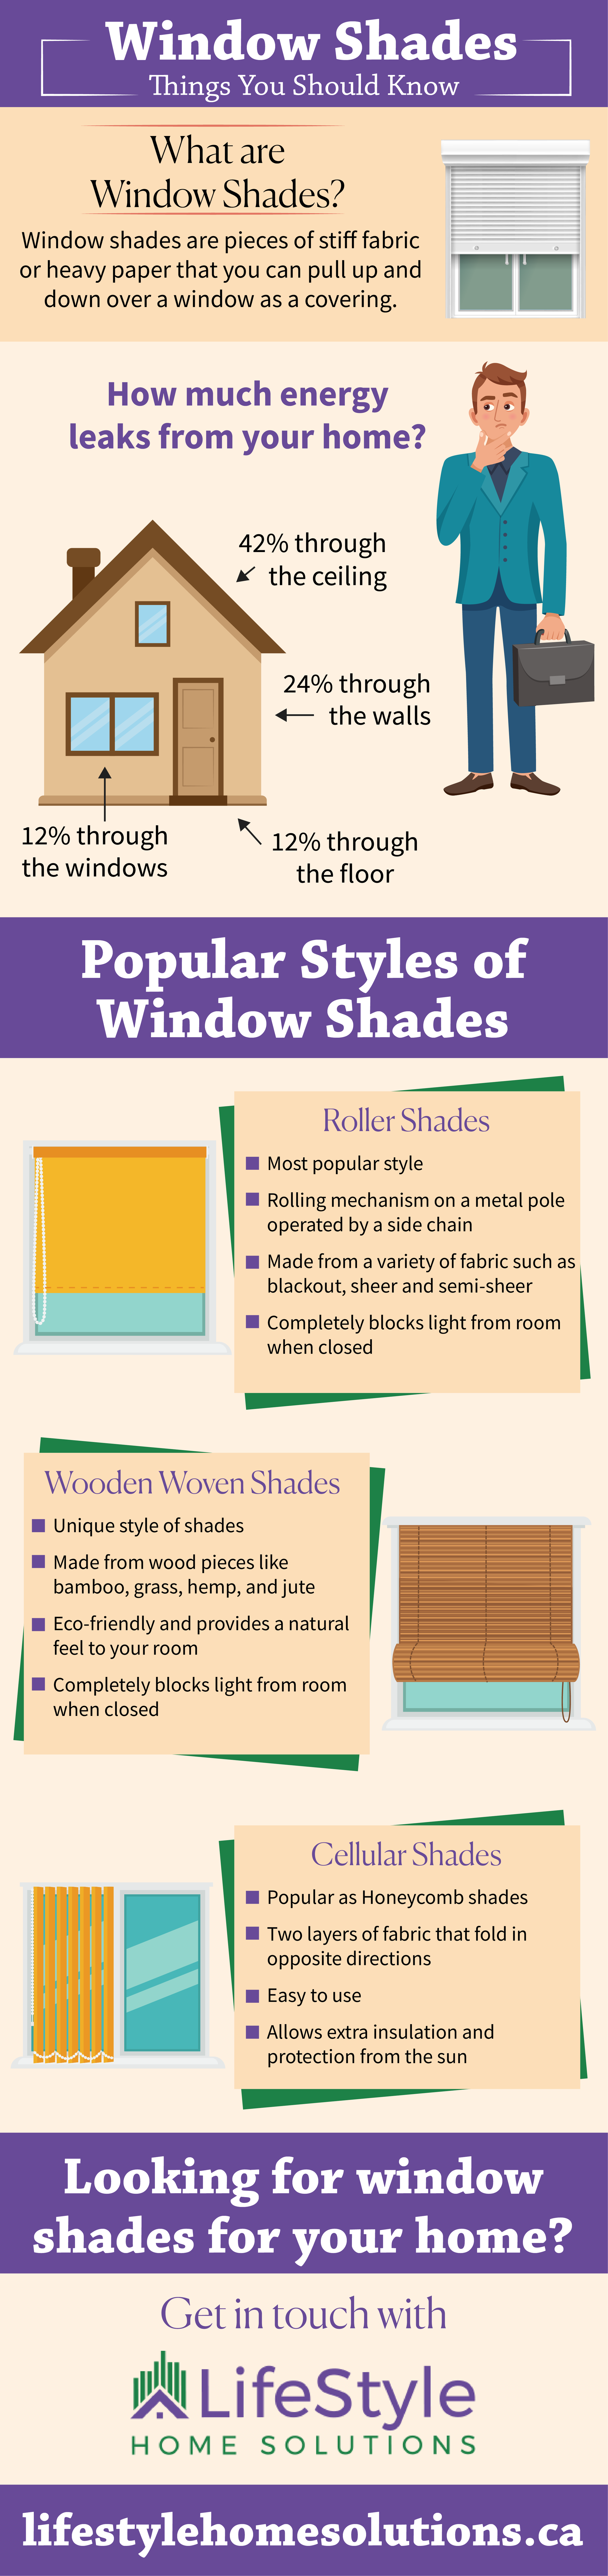 window shades things you should know